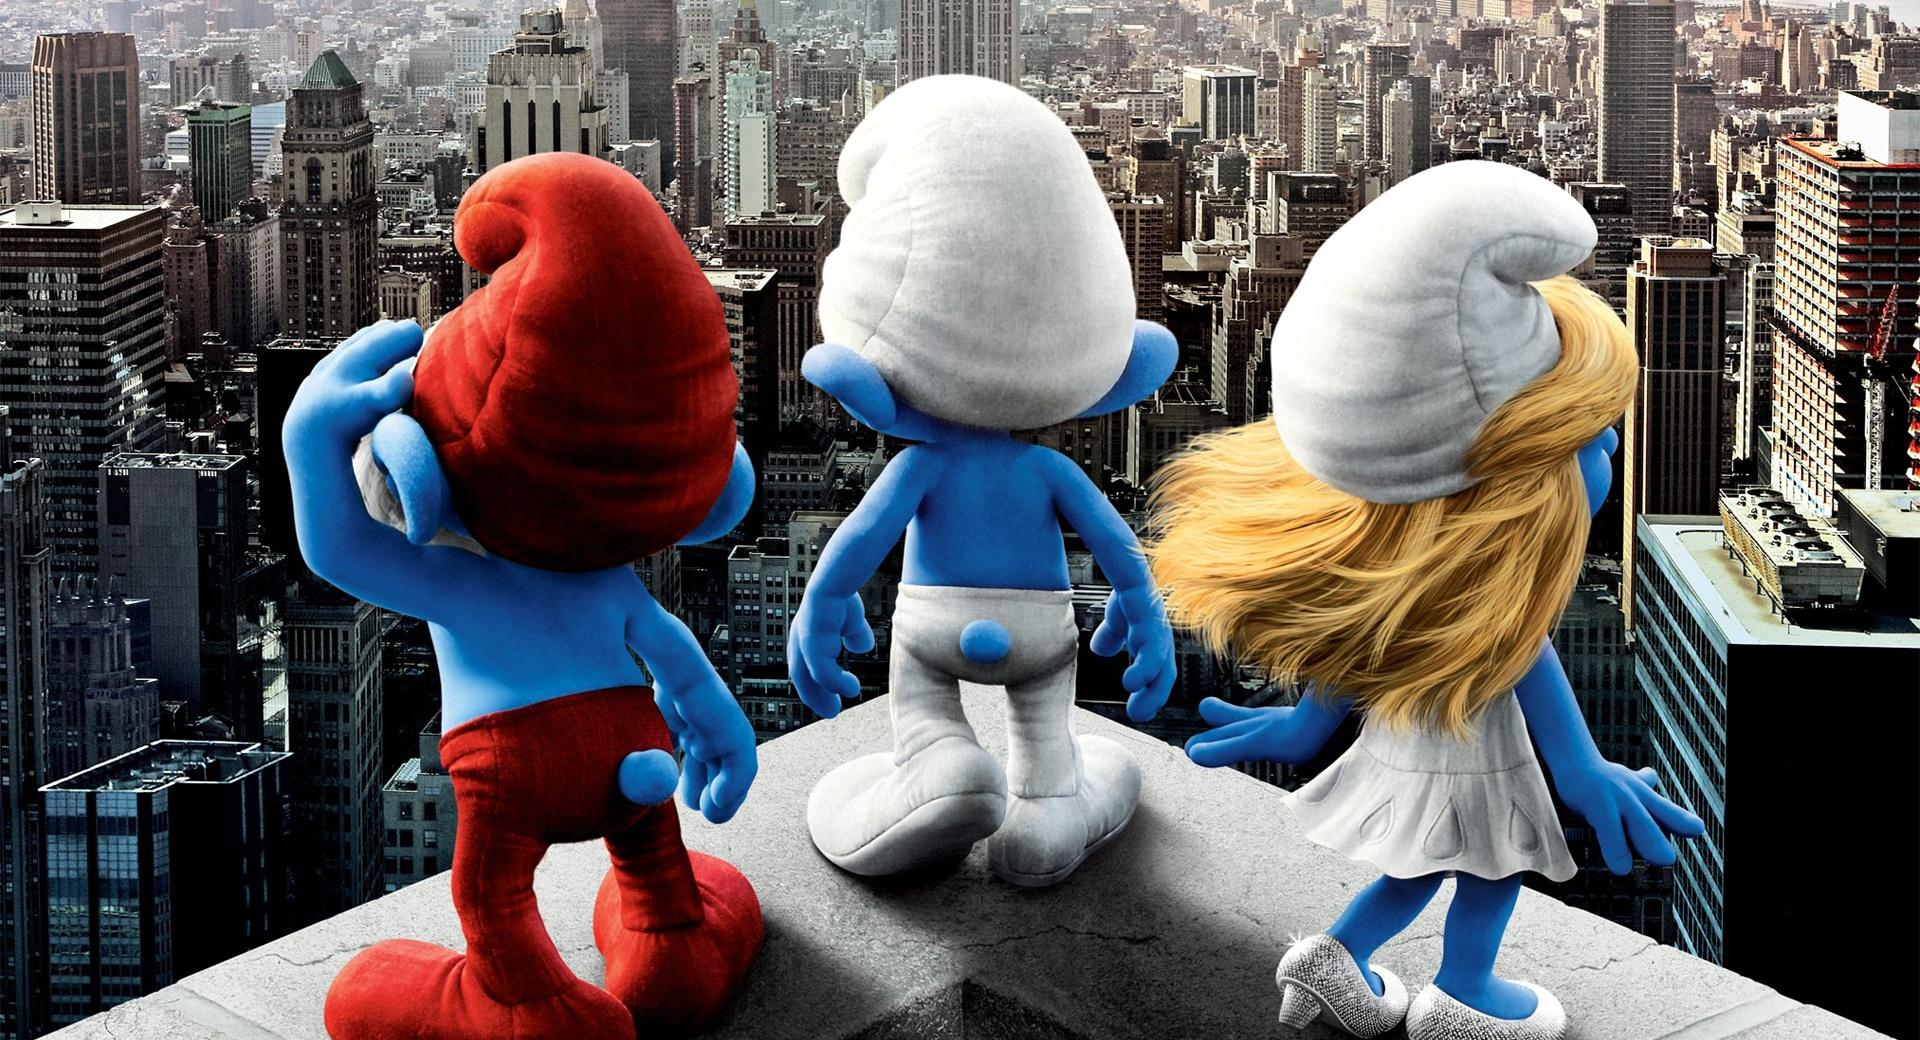 The Smurfs (2011) Movie wallpapers HD quality